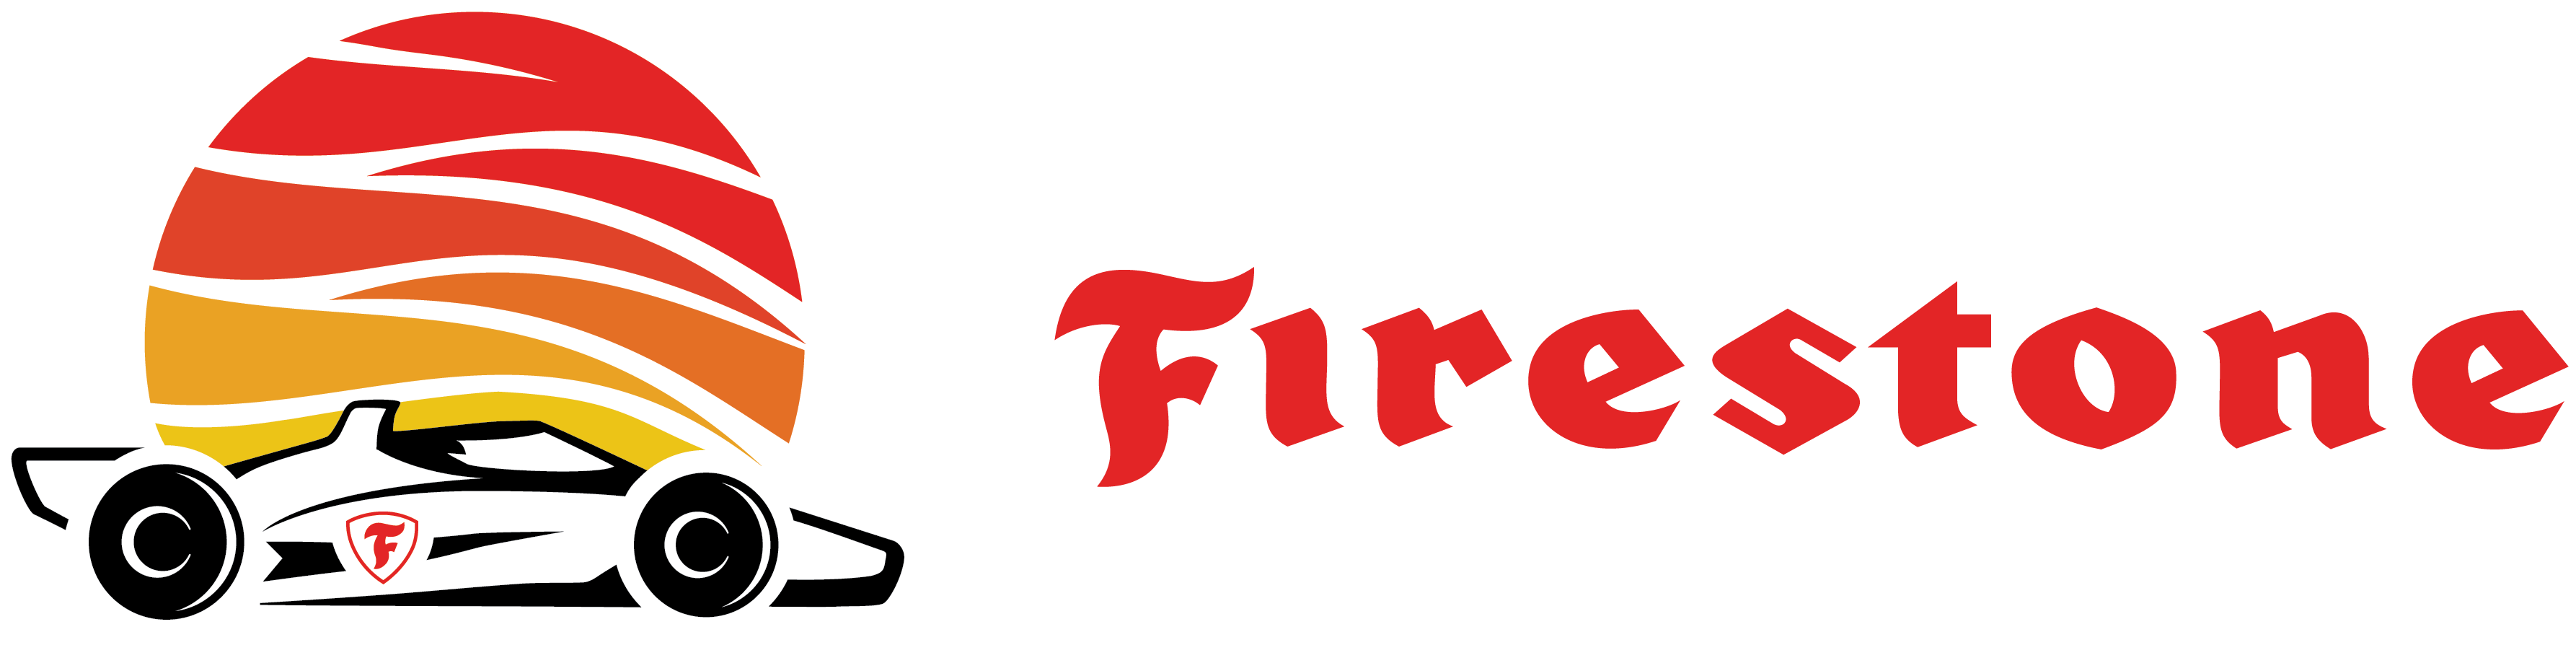 2021 Official Firestone Grand Prix Mobile Fan Guide